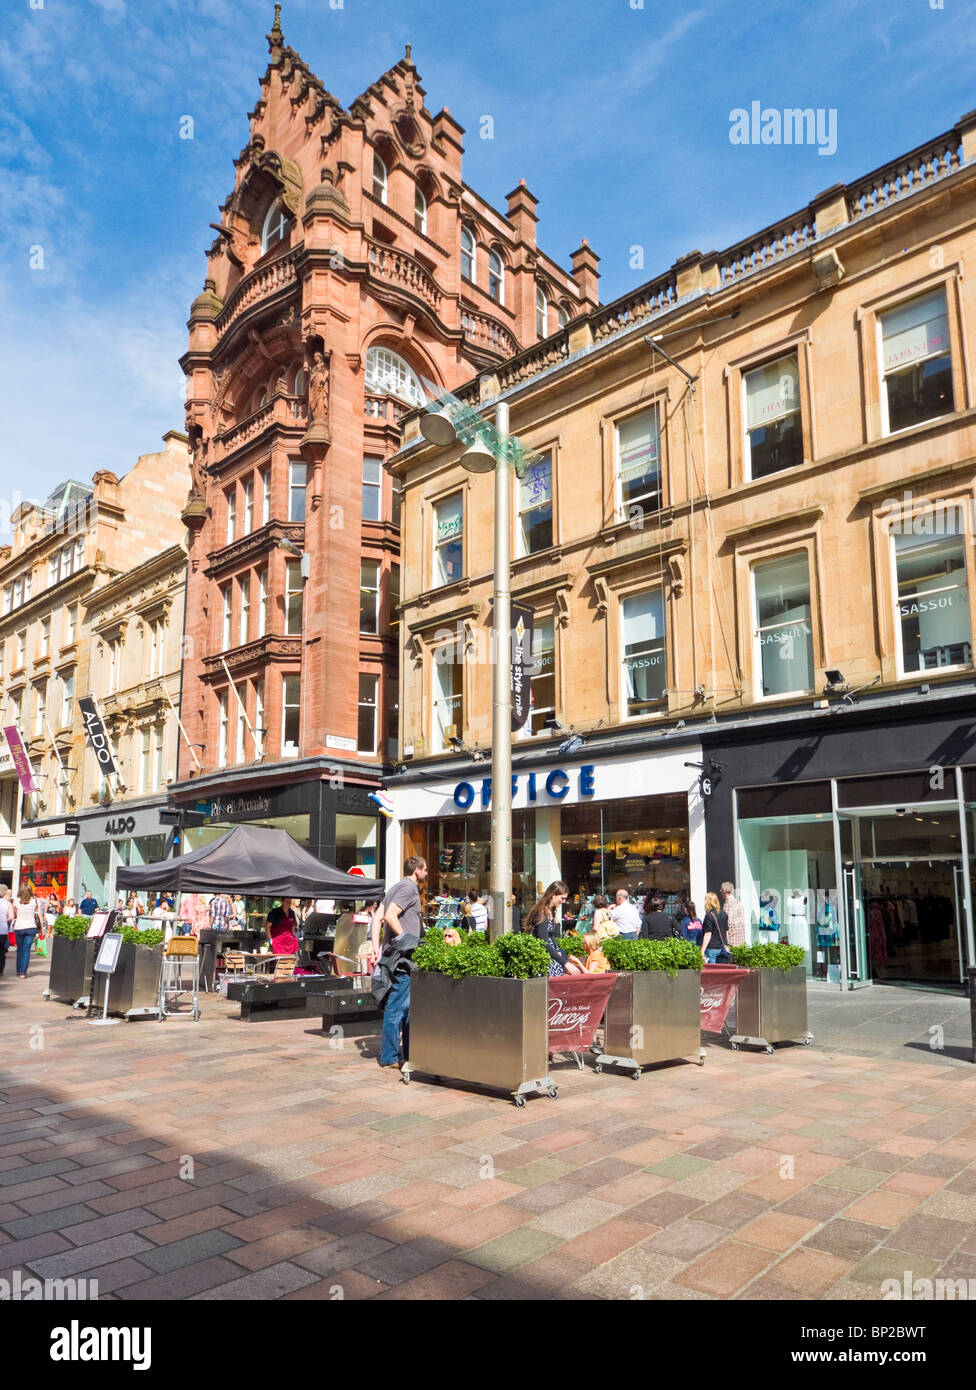 Cafe Culture in Buchanan Street Glasgow Scotland - Stock Image